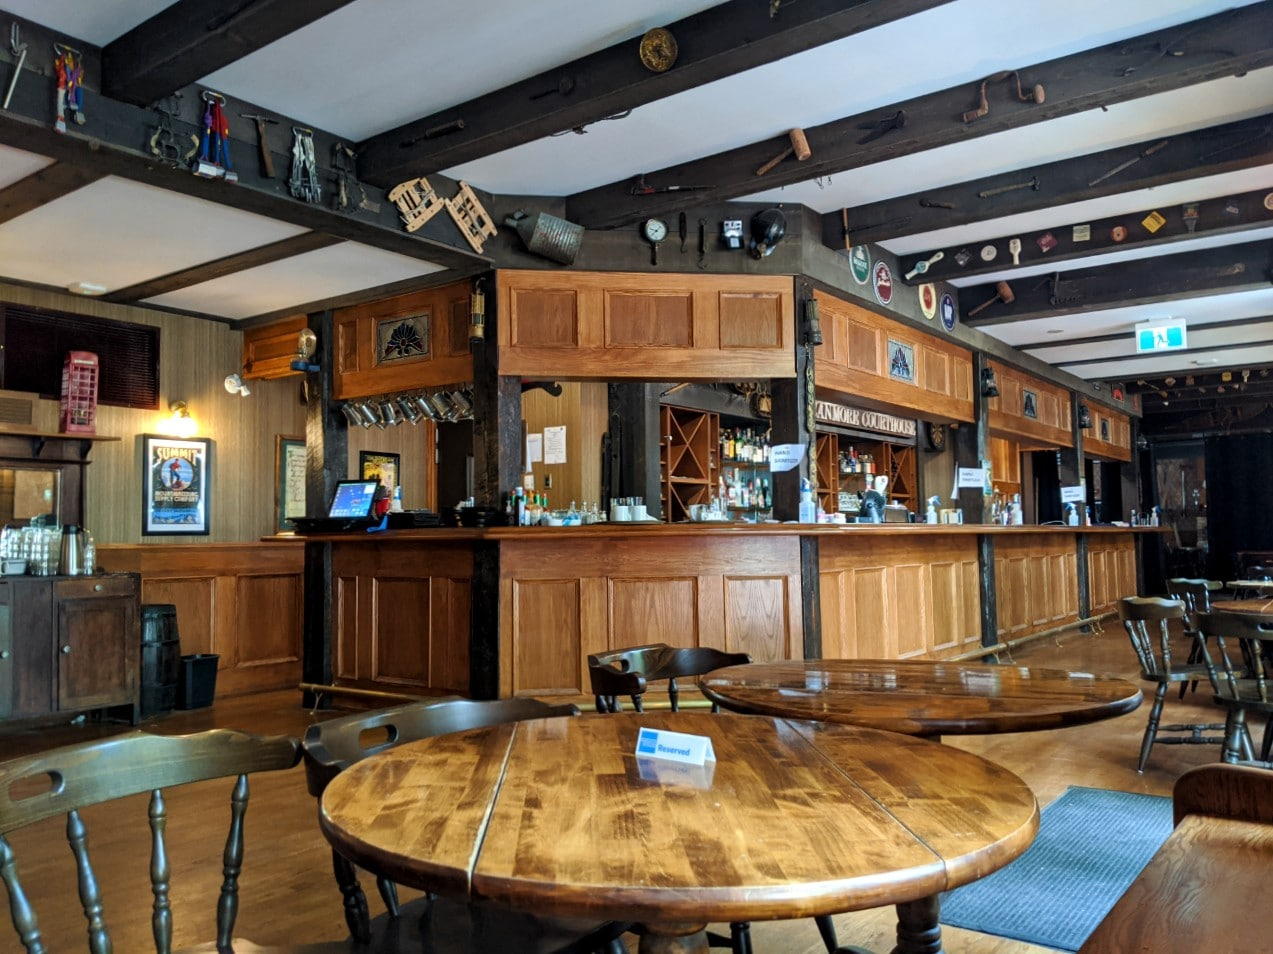 Inside the Miner's Lamp Pub, with English country pub style decor (wooden beams, wooden tables, paneled bar)